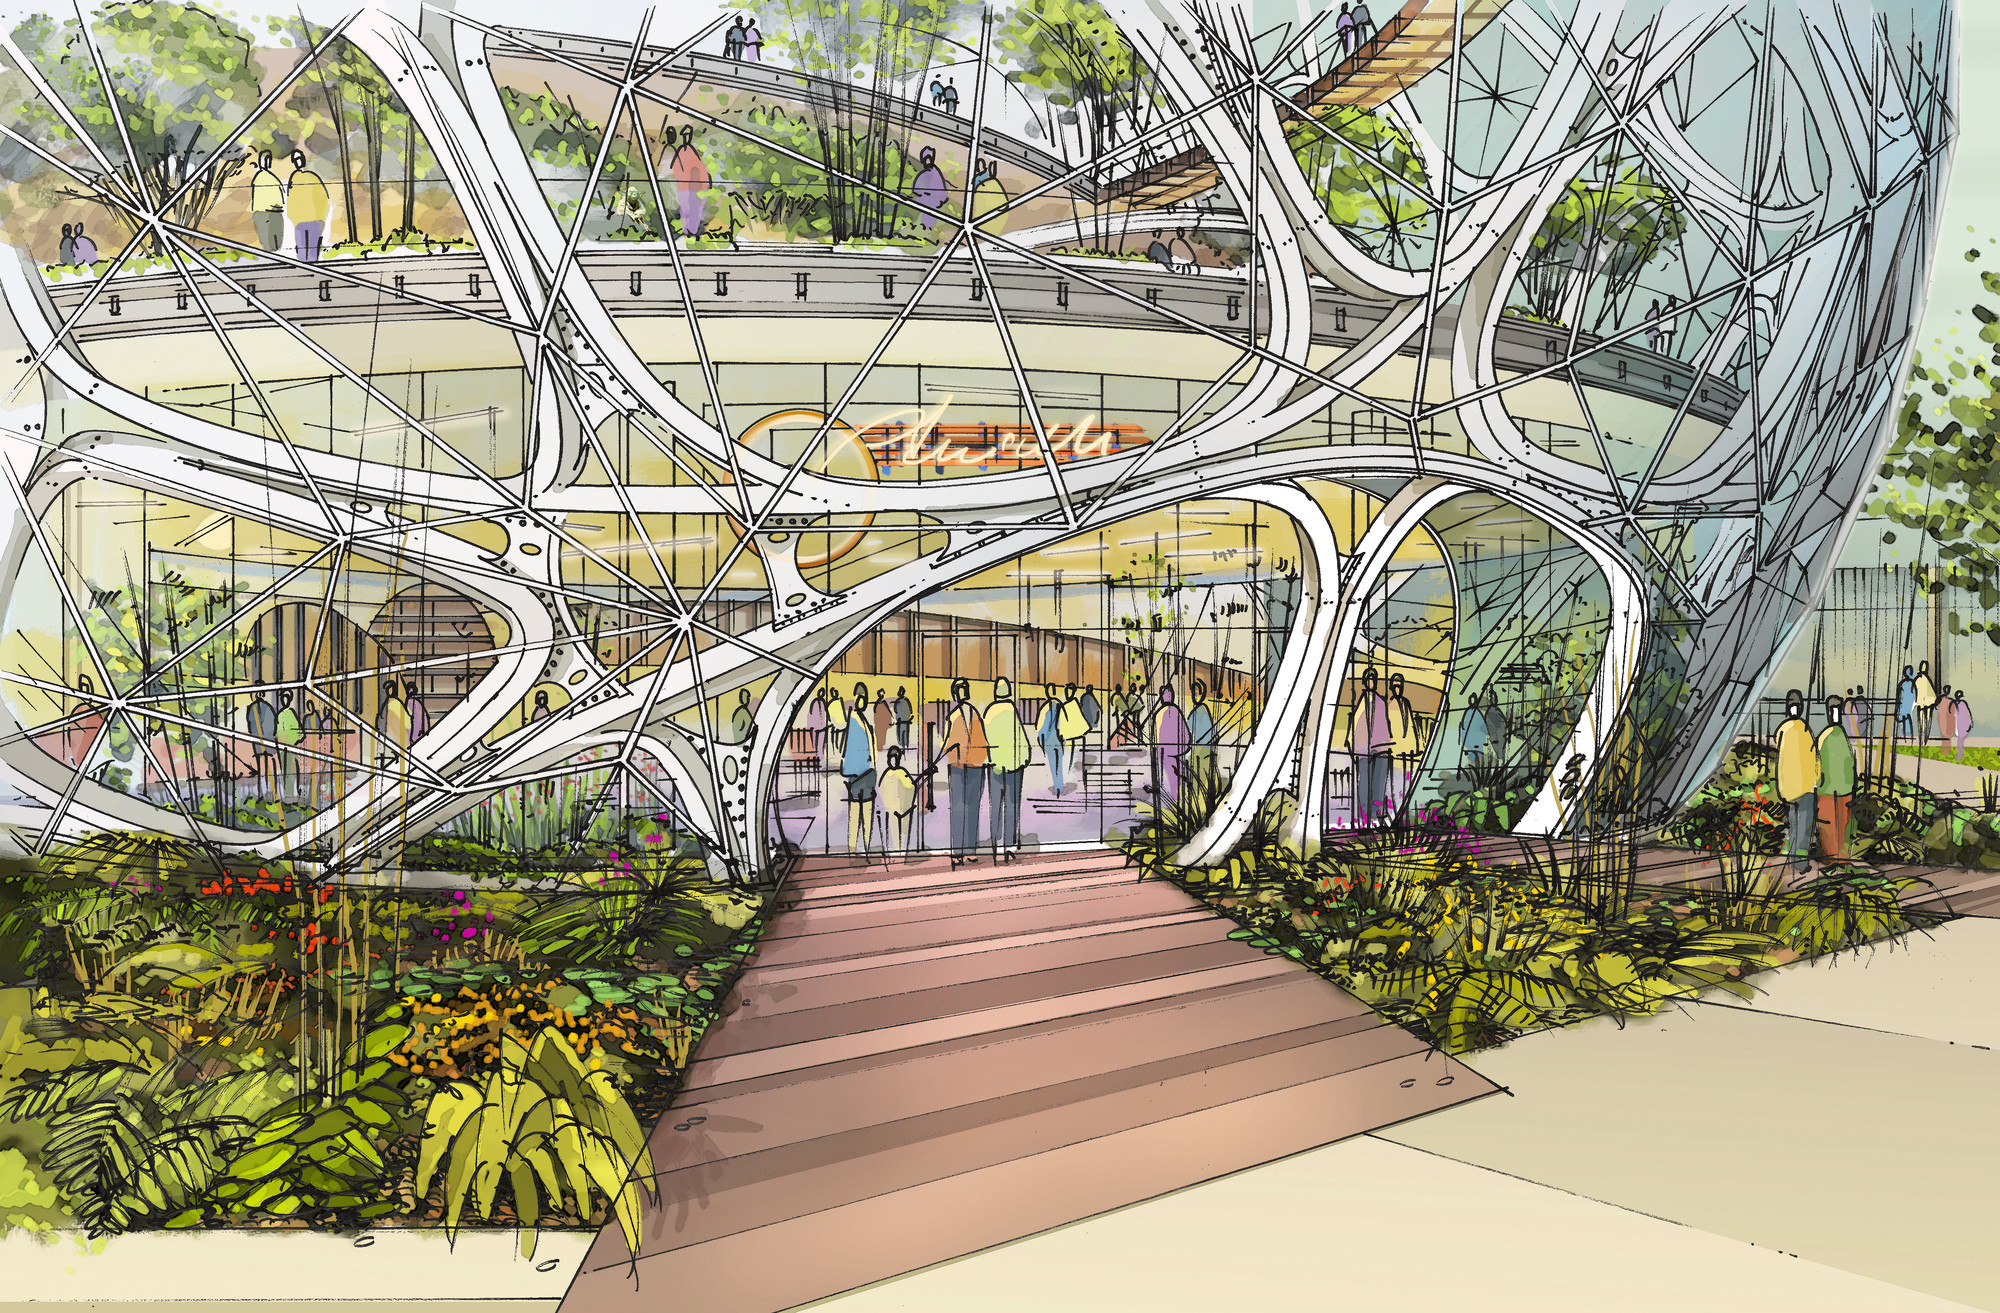 Amazon S Nbbj Designed Biodome Approved By Seattle Design Board on Square Office Building Floor Plan